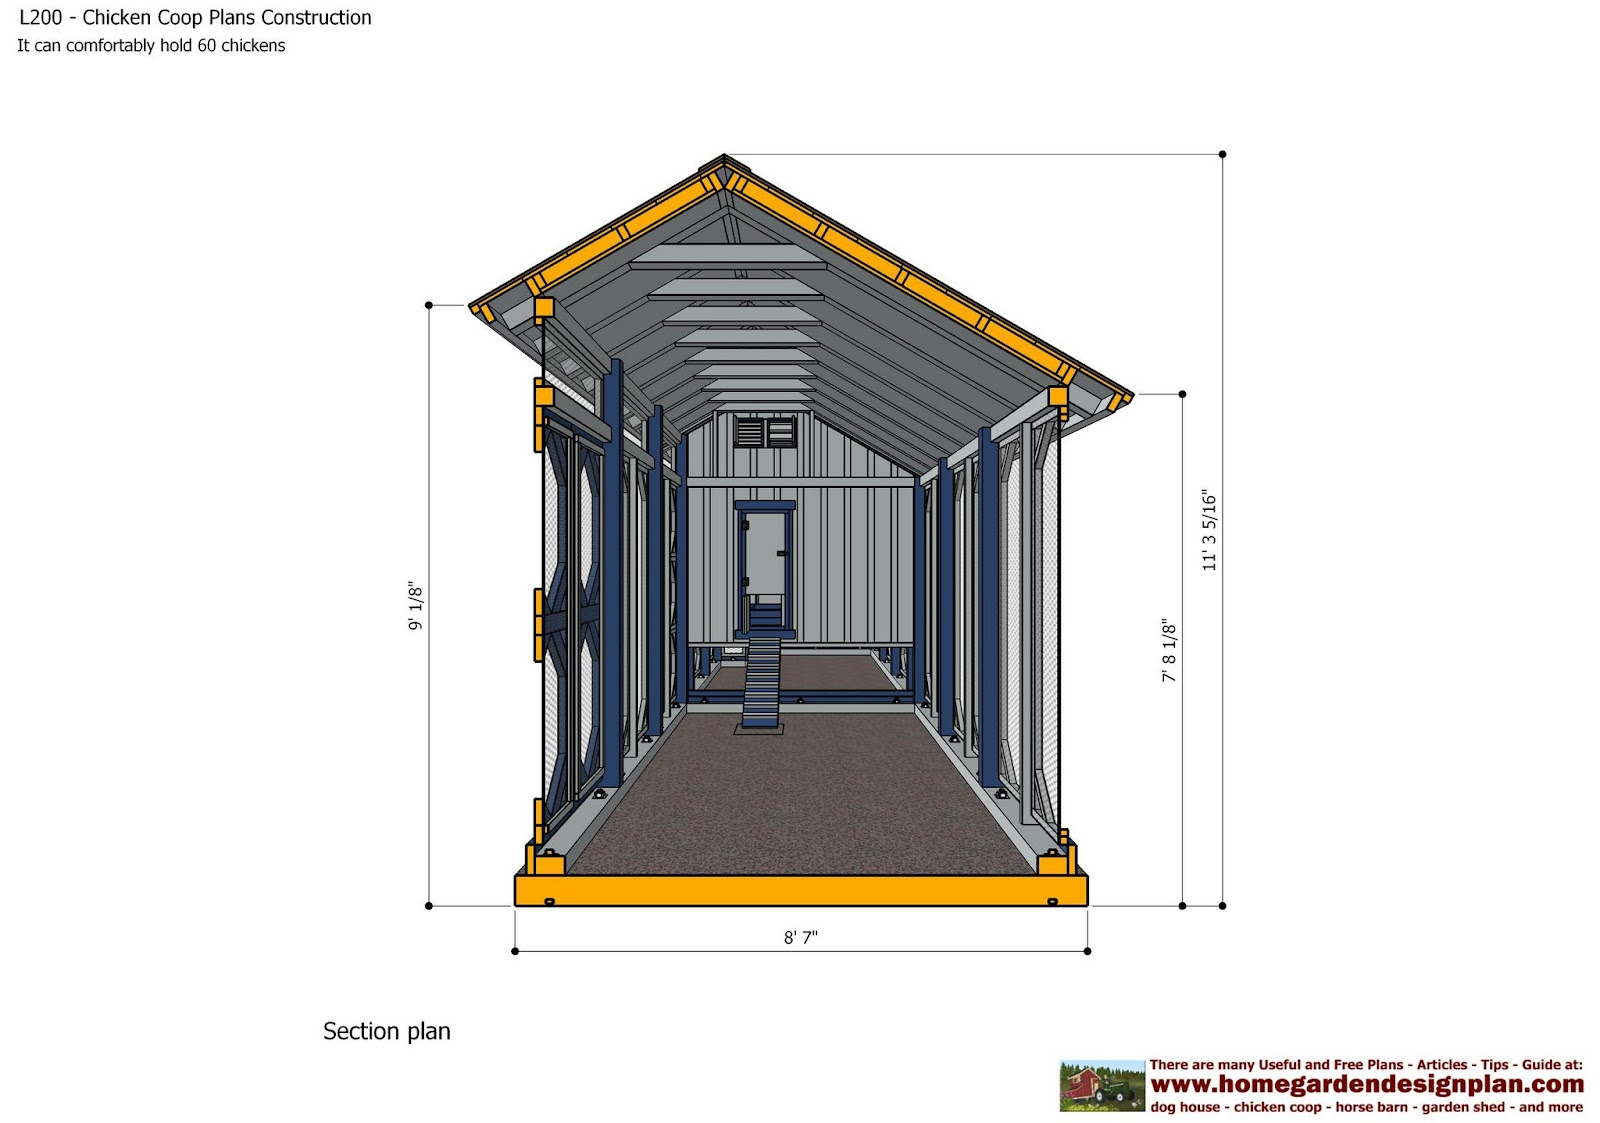 Home garden plans l200 chicken coop plans construction for How to design a chicken coop